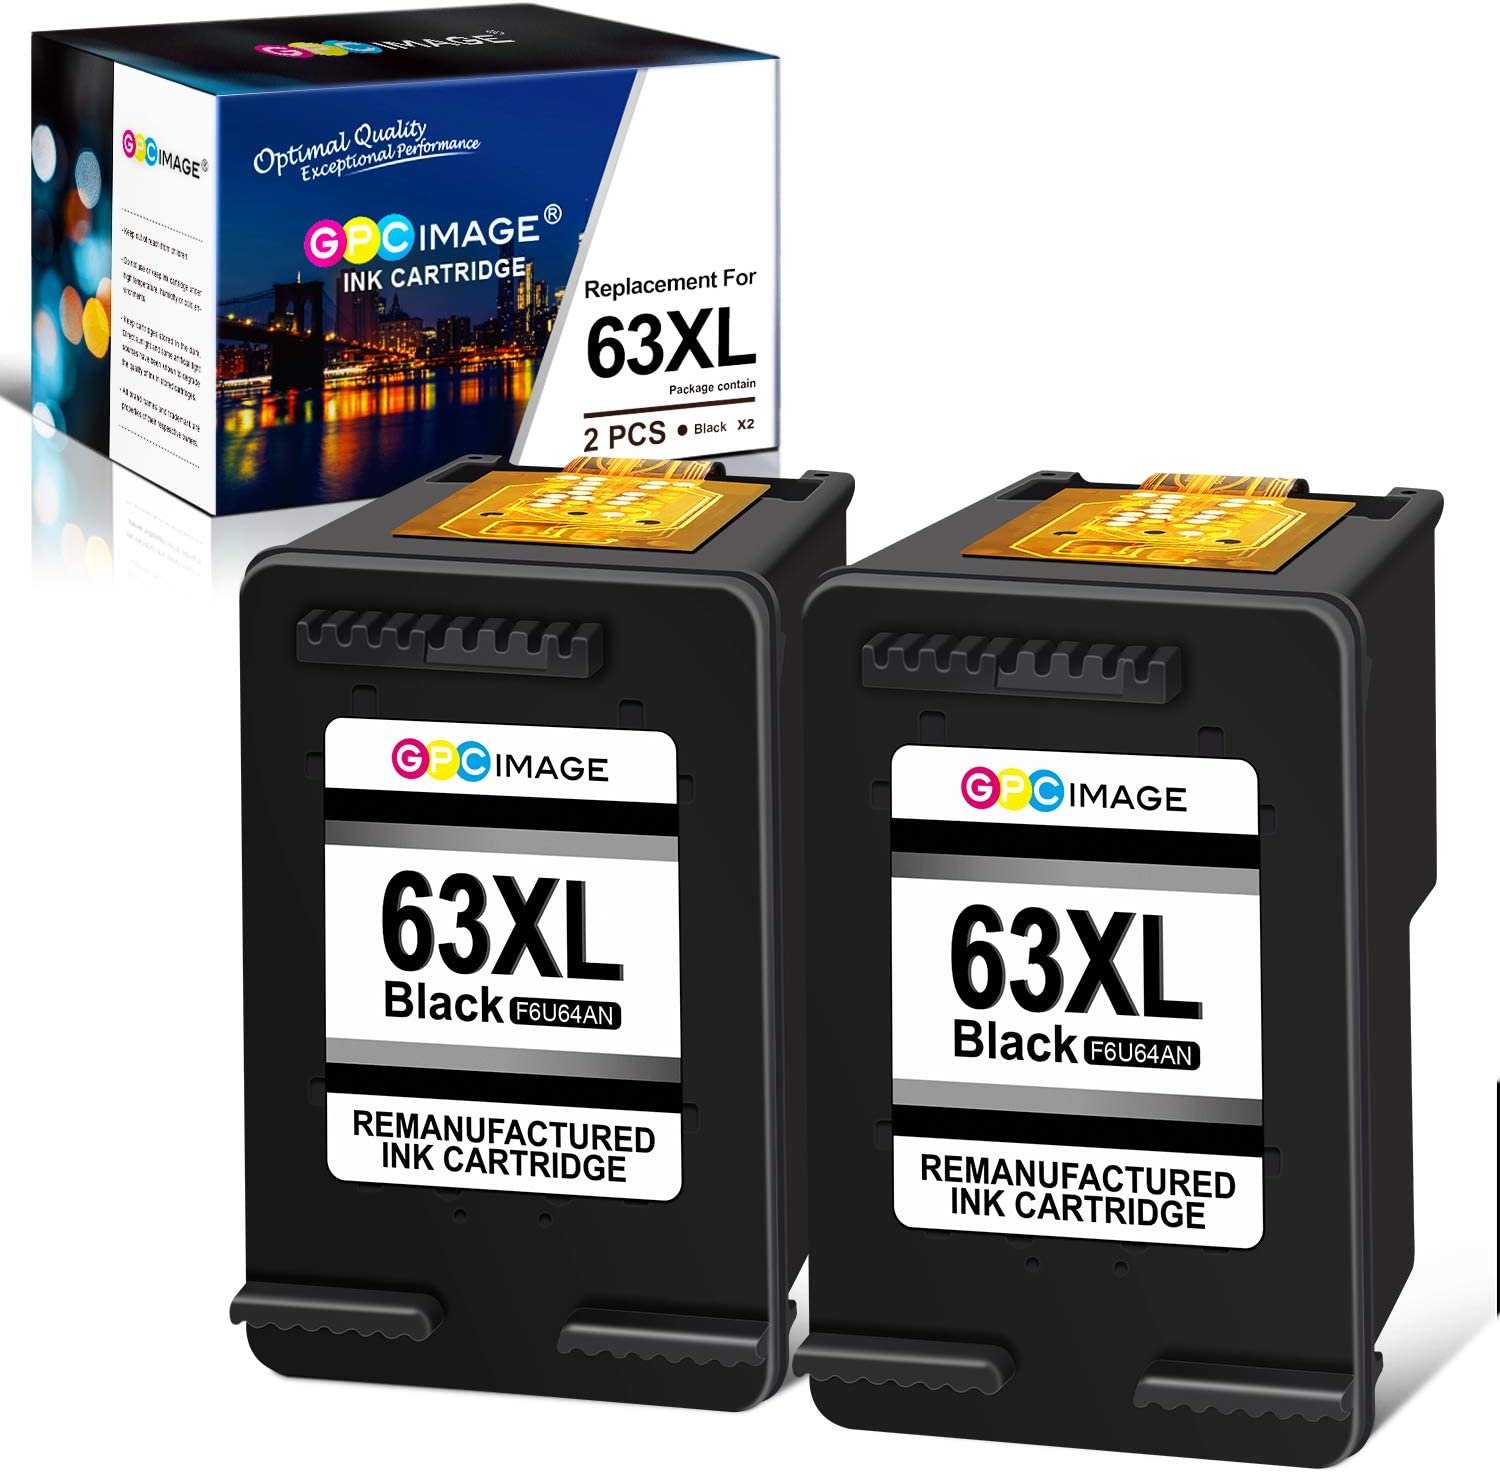 GPC Image Remanufactured Ink Cartridge Replacement for HP 63XL 63 XL with OfficeJet 3830 5255 4650 Envy 4520 4512 4516 Deskjet 1112 3630 3632 3634 2132 Printer (2 Black)